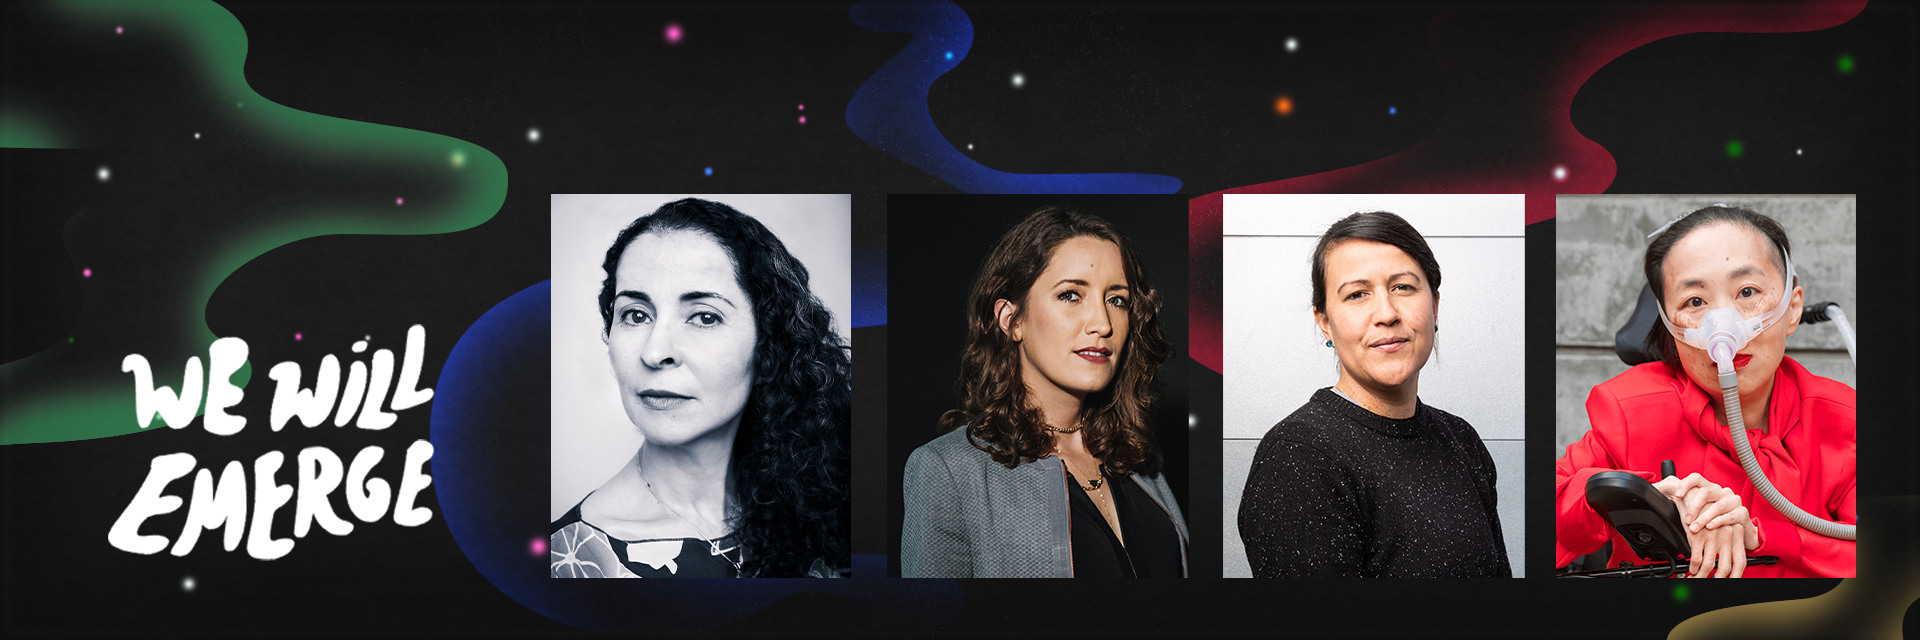 Colorful swirl effect overlaid on top of headshots of Laila Lalami, Jean Guerrero, Natalie Diaz, and Alice Wong (left to right) and next to the text